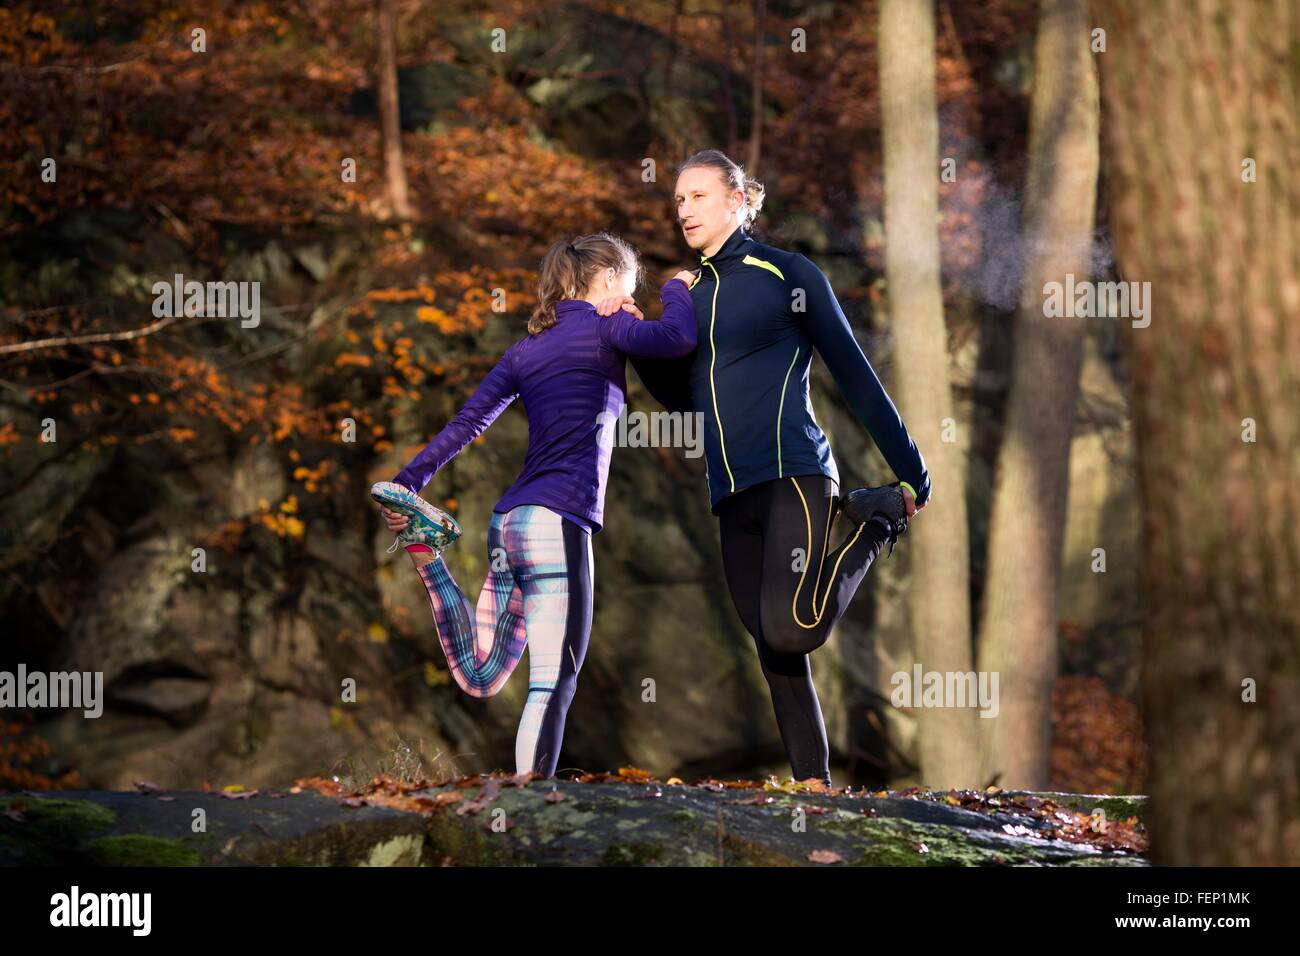 Couple in forest leaning against each other leg raised holding foot stretching - Stock Image